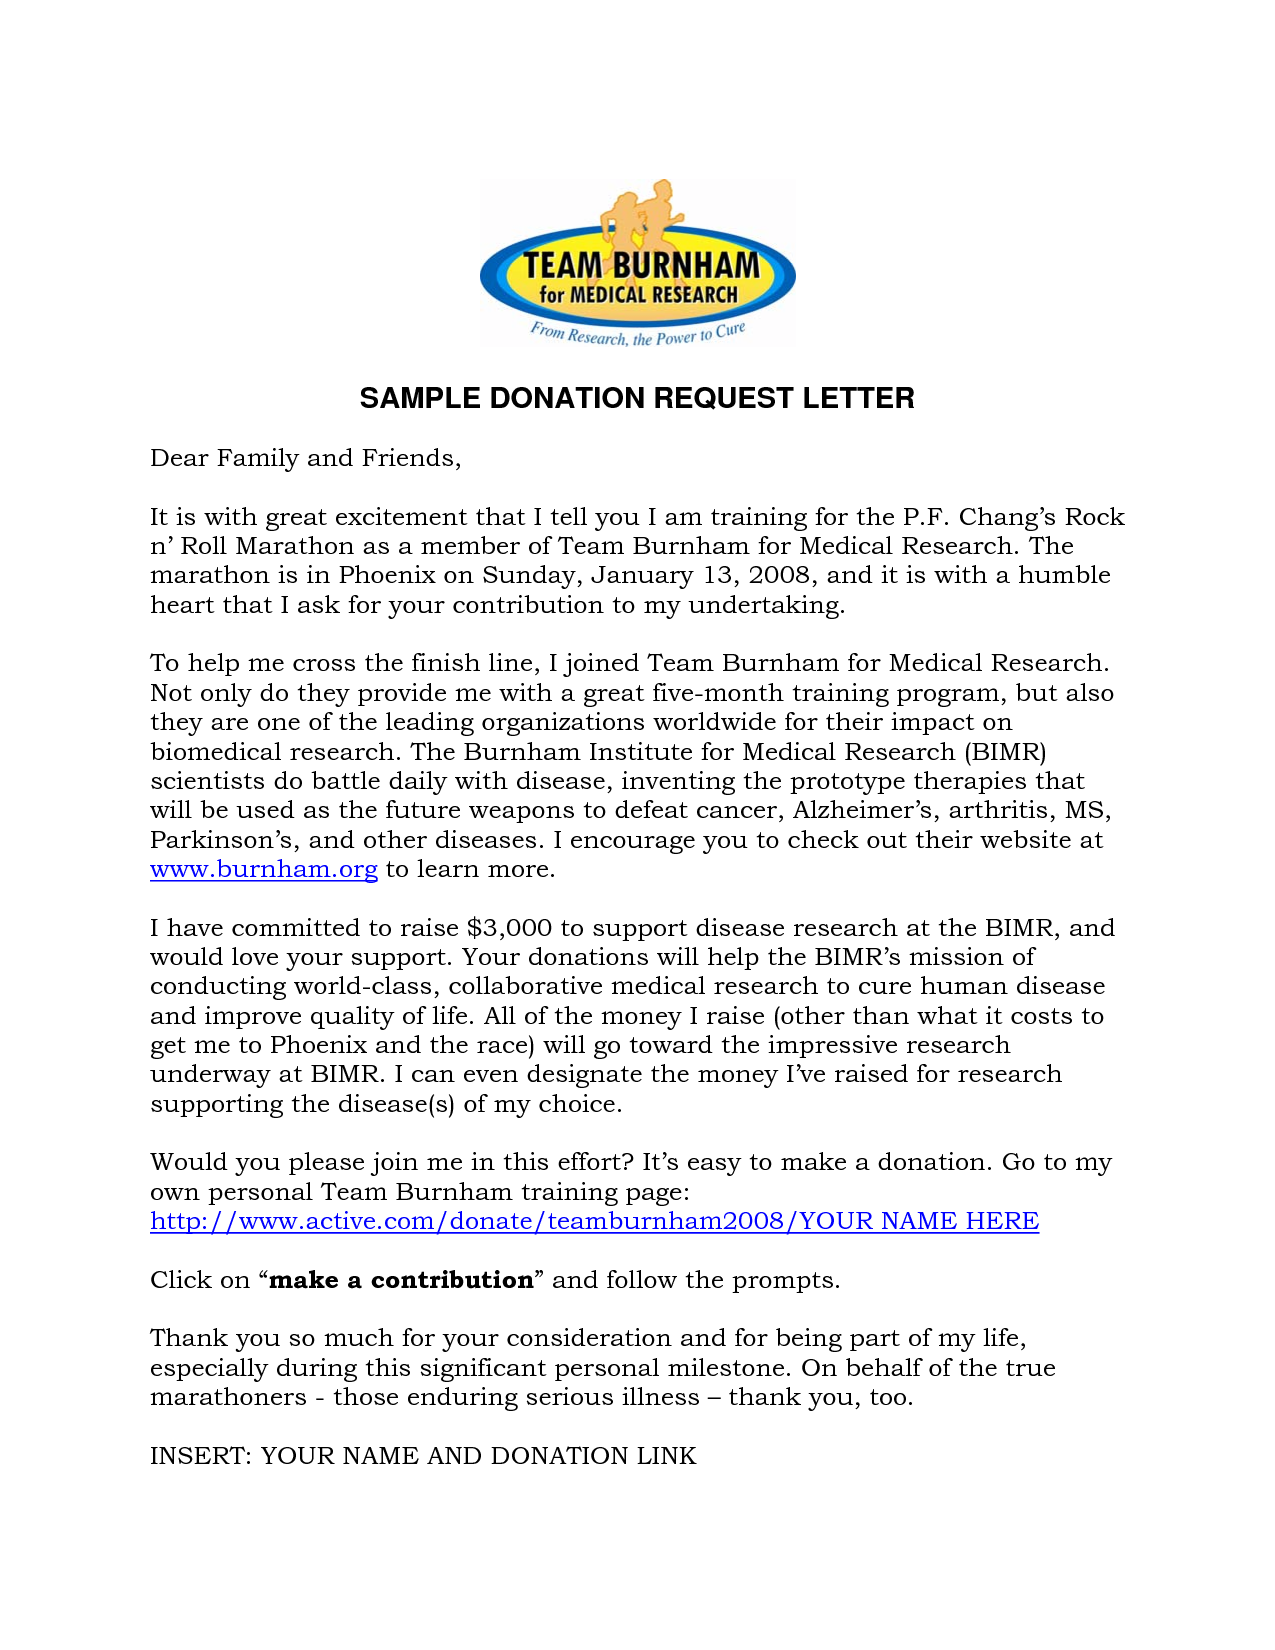 Letter Format For Donation Request. Sample Donation Request Letter Template  Cover Latter